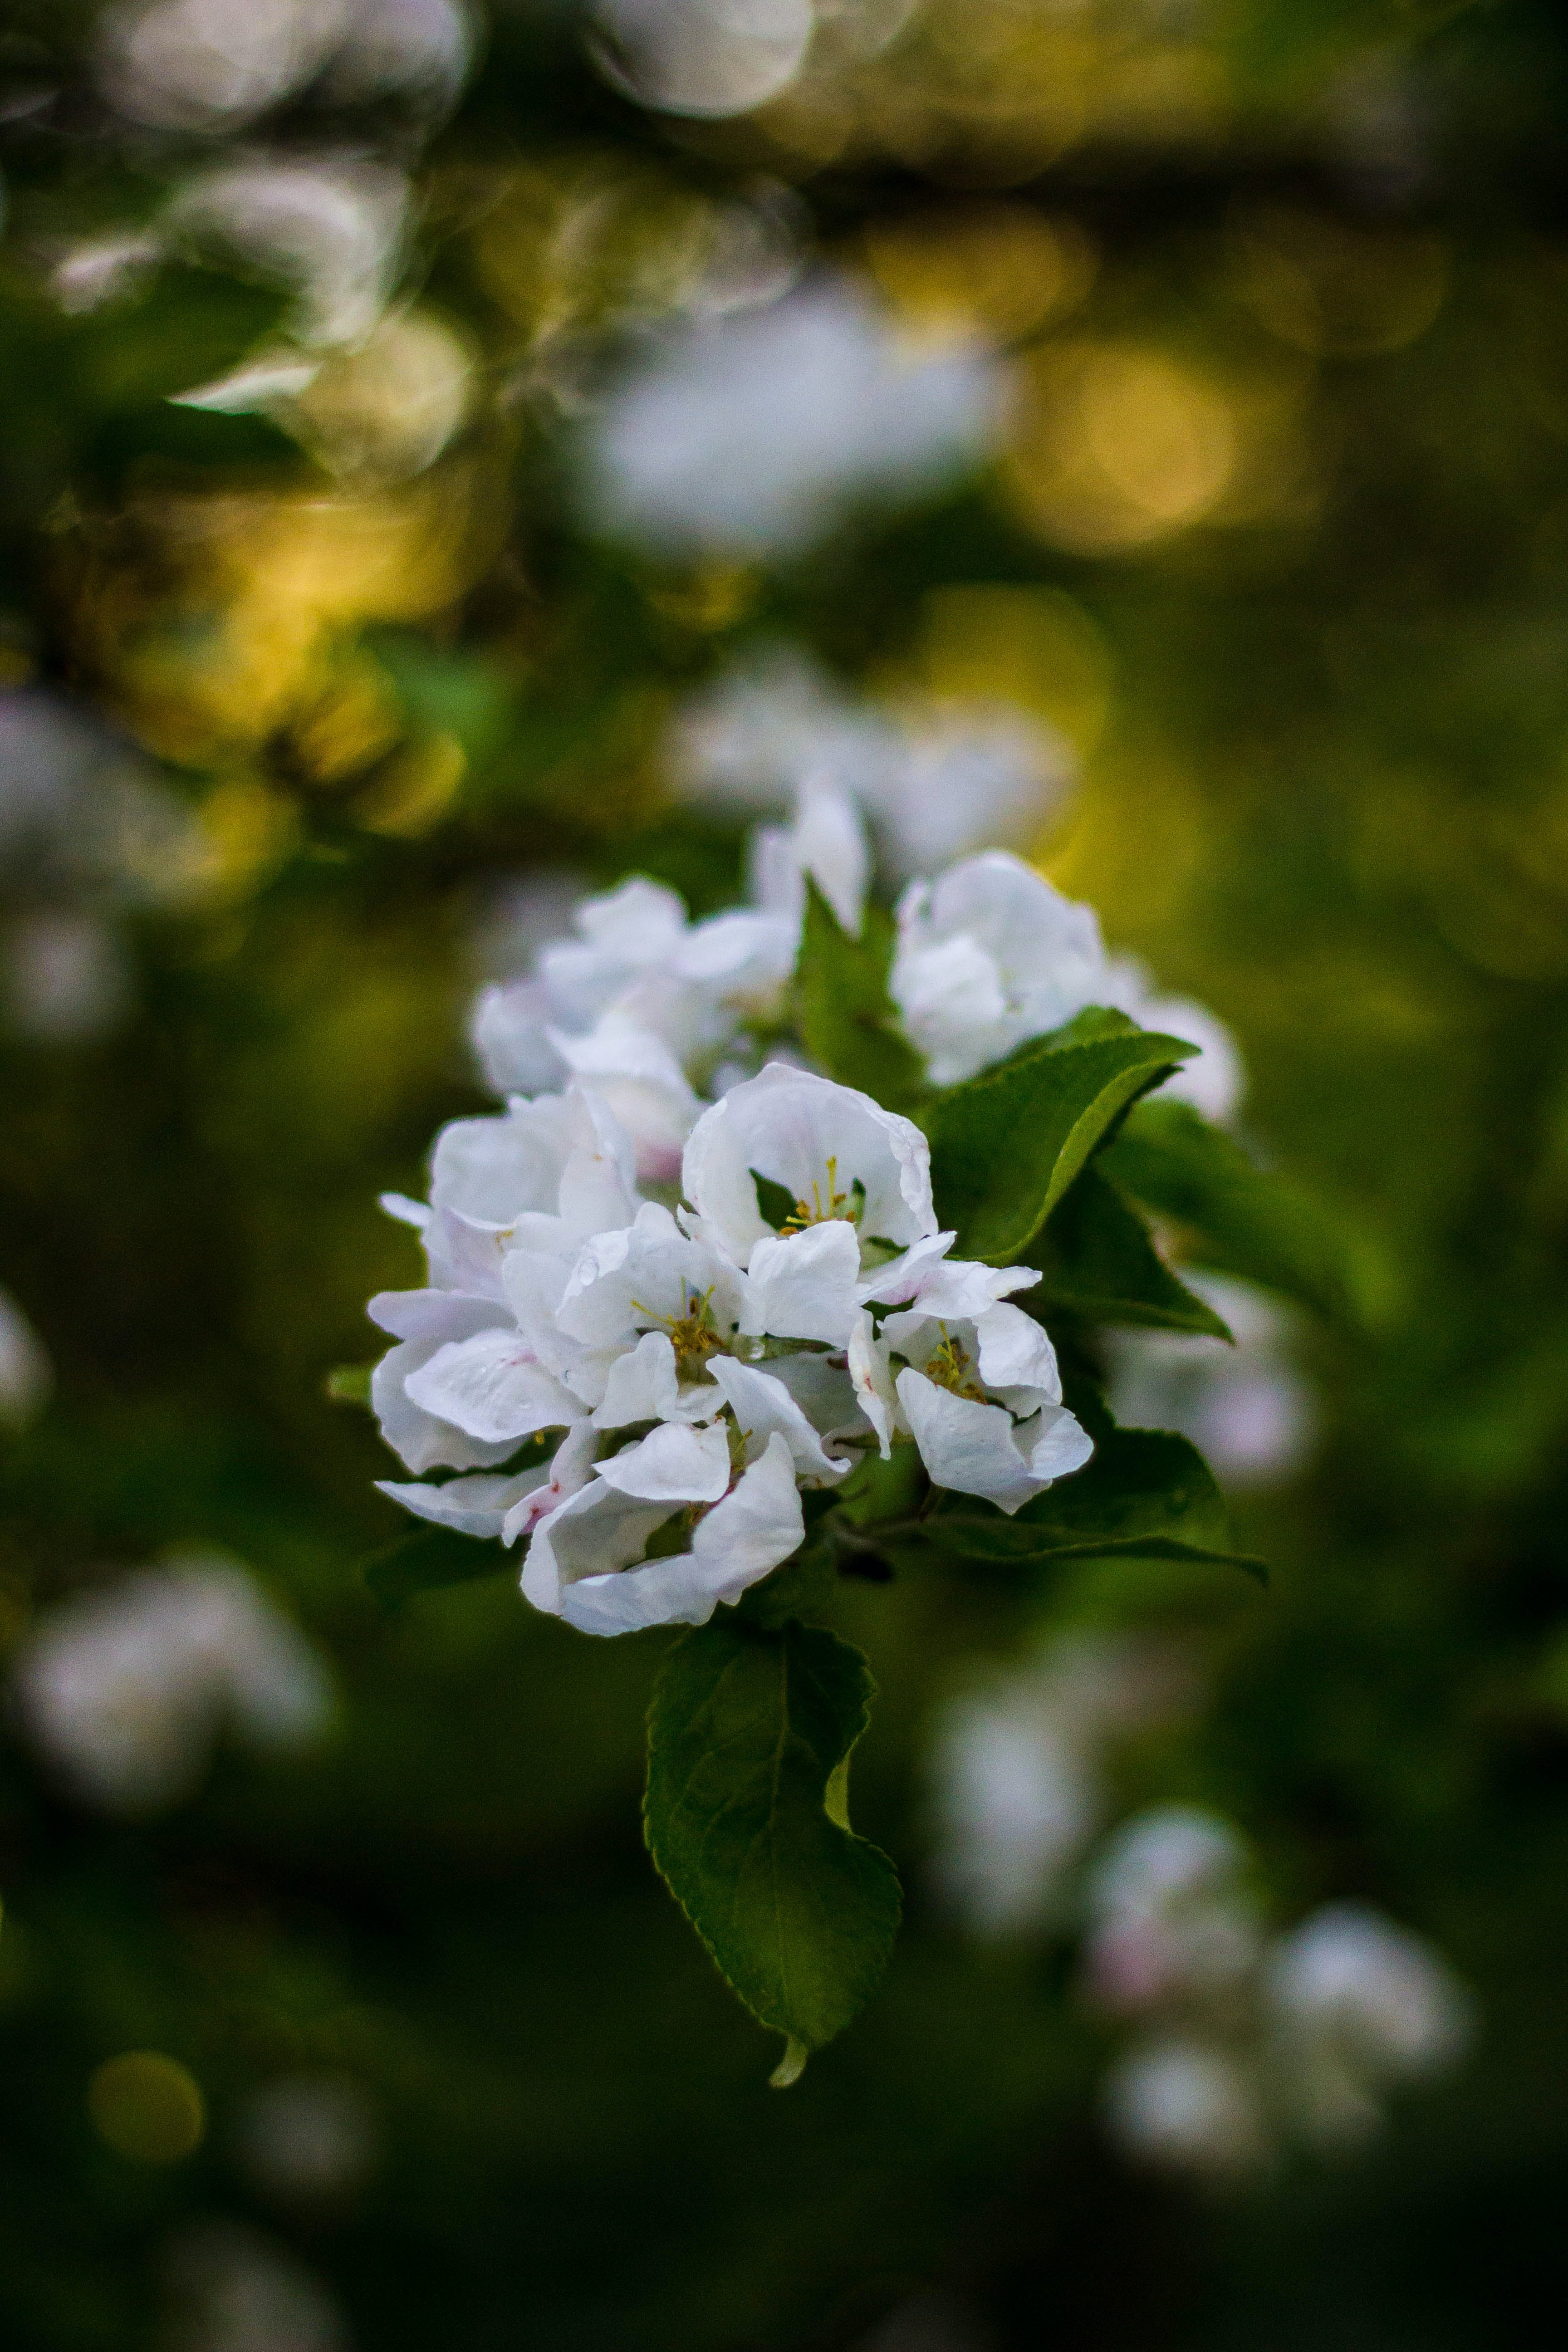 Free stock photo of flowers, leaves, white, flora